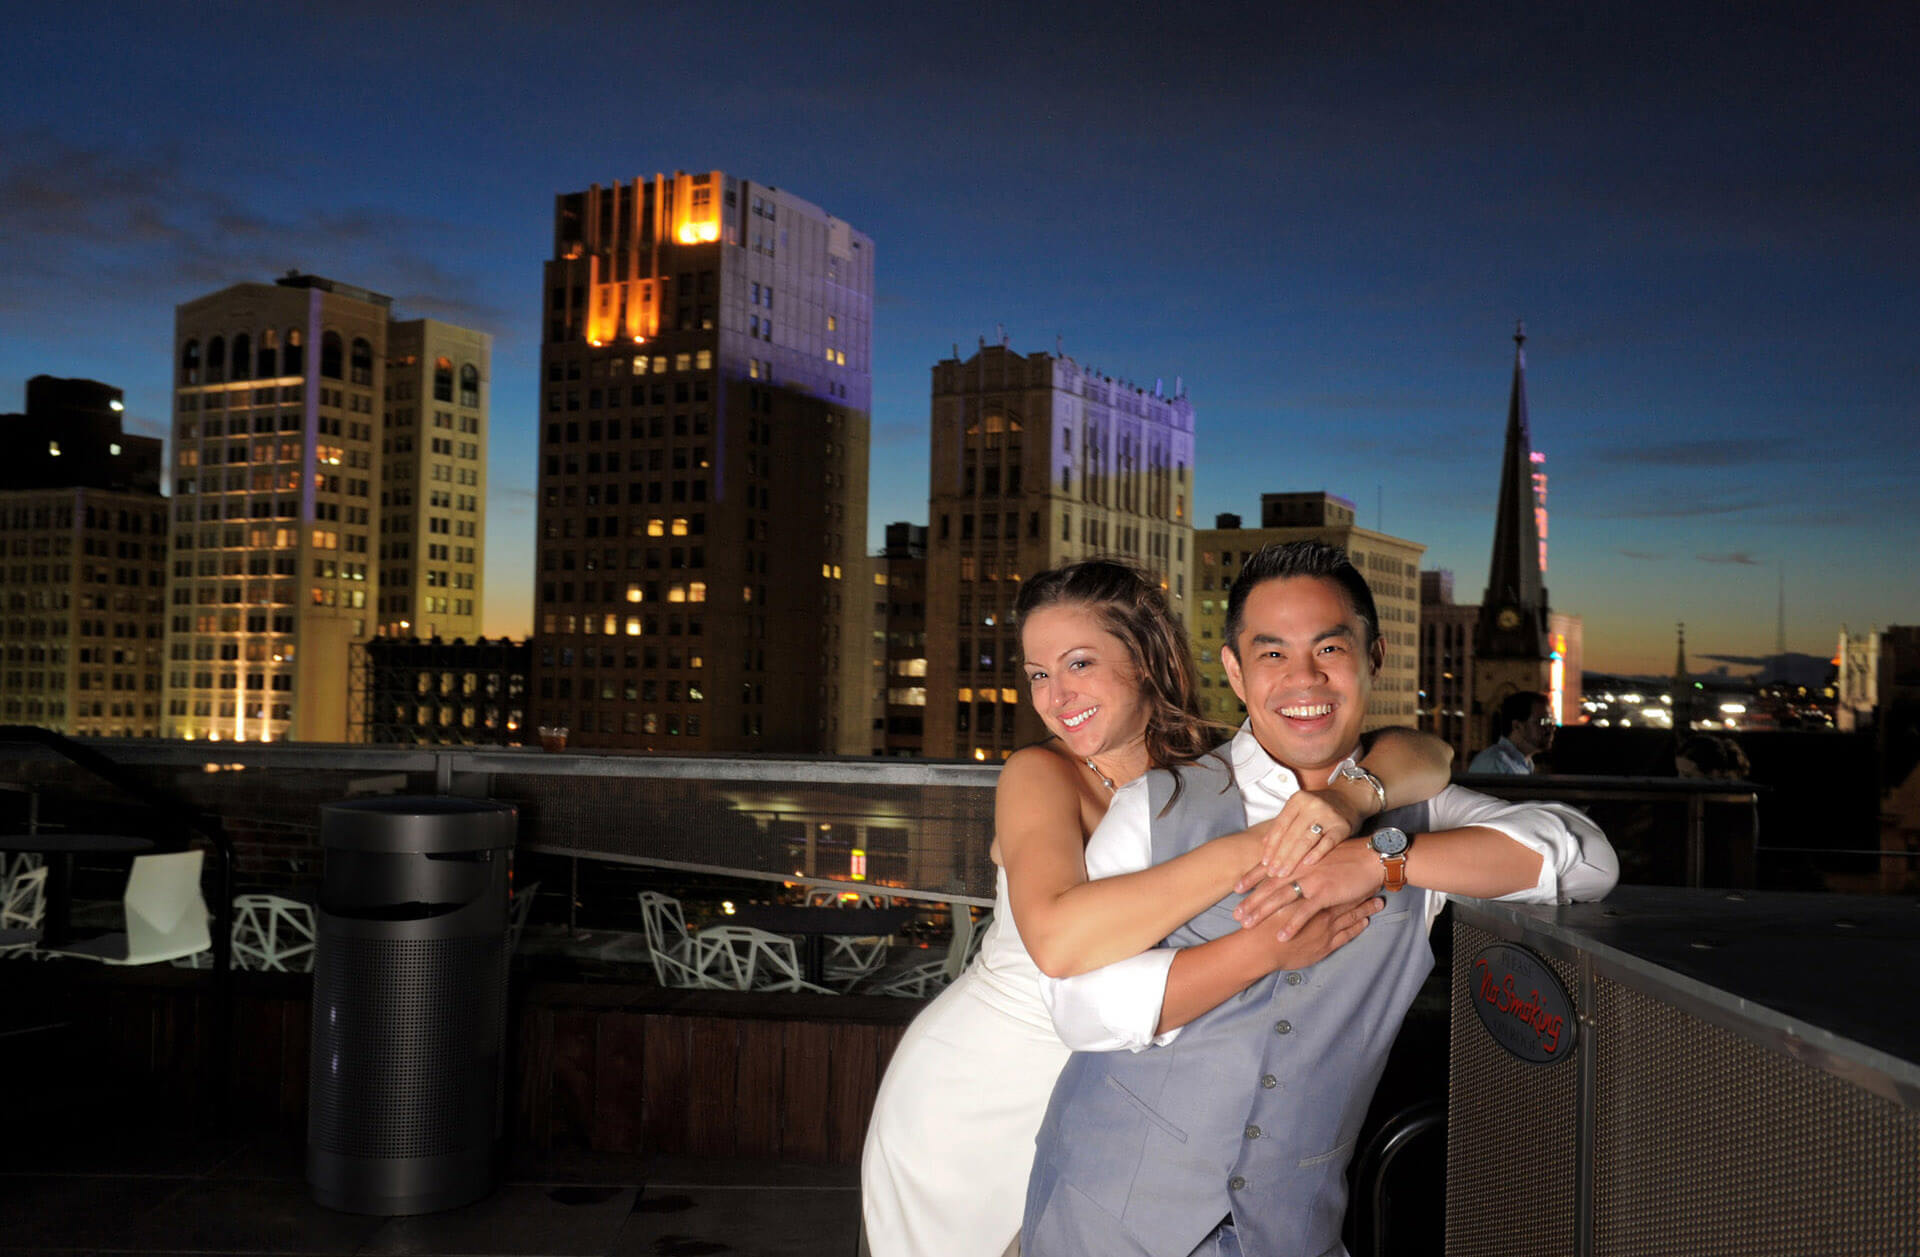 A bride and groom snuggle just after sunset on their rooftop wedding reception location in Downtown Detroit, Michigan.